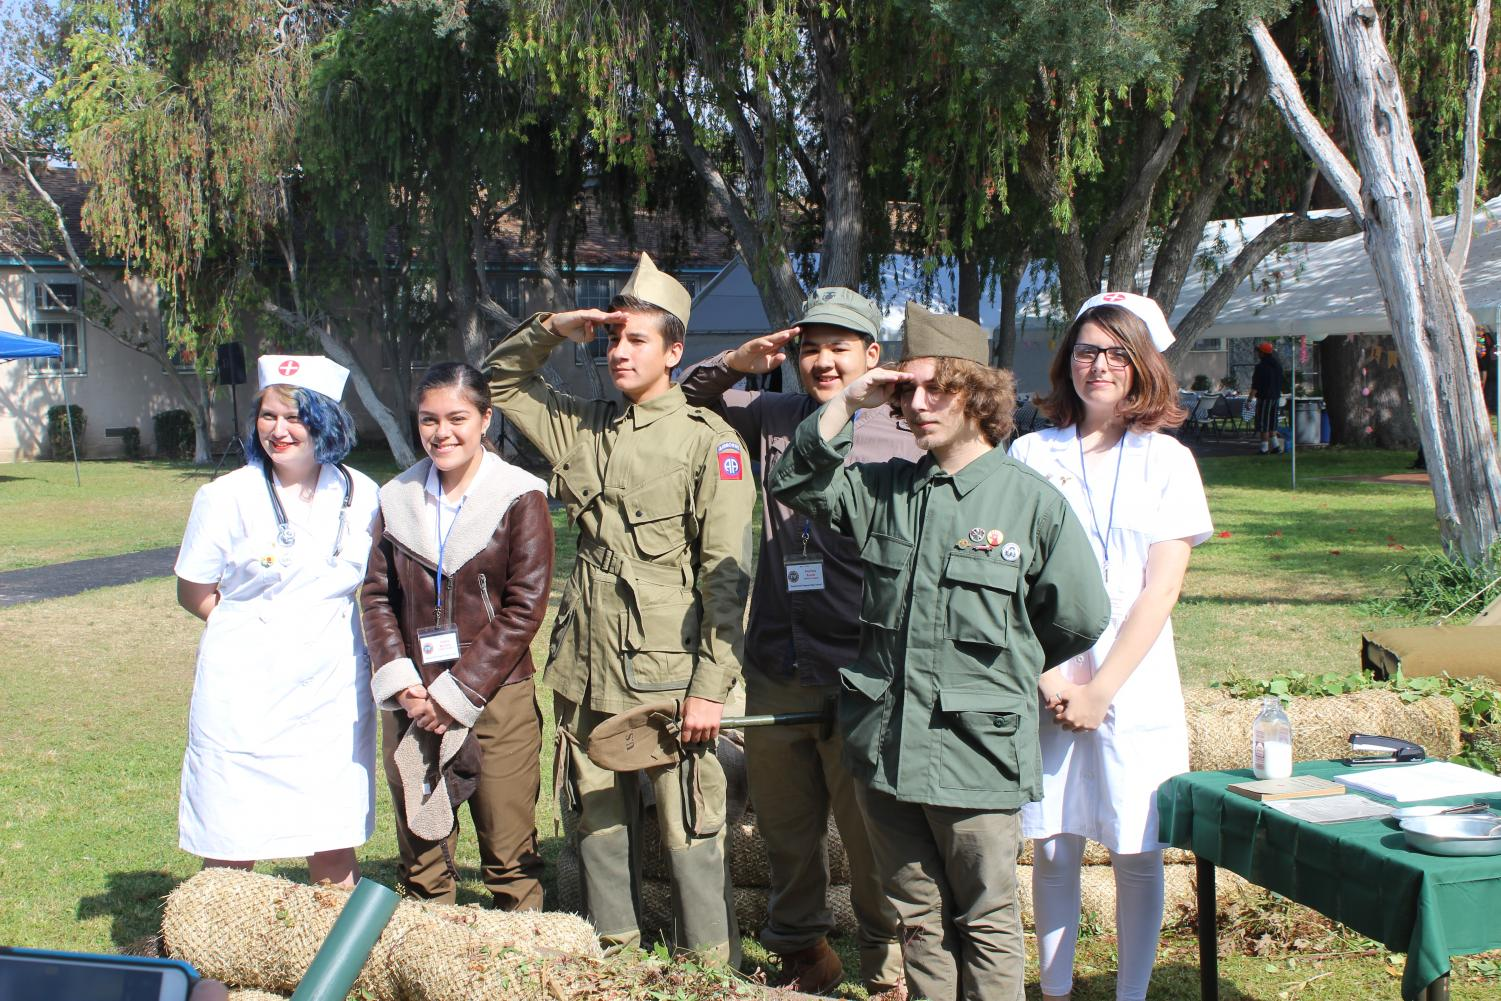 Sophomores+Adrienne+Bangert%2C+Valery+Barrera%2C+August+Defore%2C+Harlow+Frank%2C+Fransico+Weltman+and+Stephanie+Pynes+dressed+up+as+WWII+nurses+and+soldiers+during+Pearl+Con.+They+are+in+history+teacher+Francisco+Ortega%27s+AP+World+History+class.